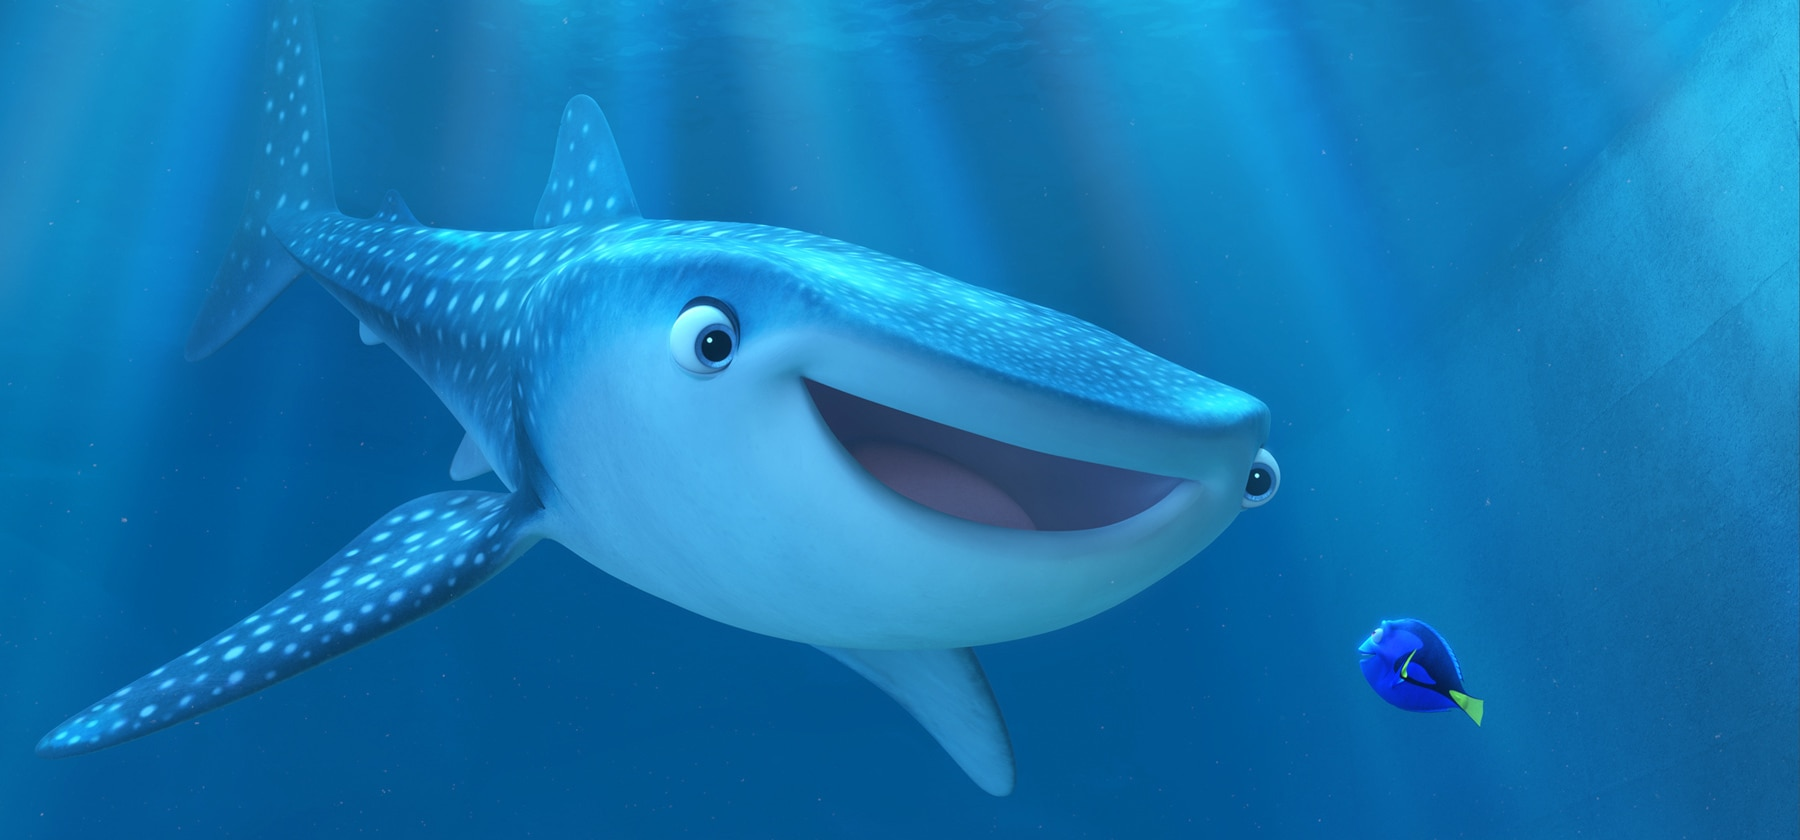 """Dory (voiced by Ellen DeGeneres) talking to Destiny (a shark voiced by Kaitlin Olson) in """"Finding Dory"""""""